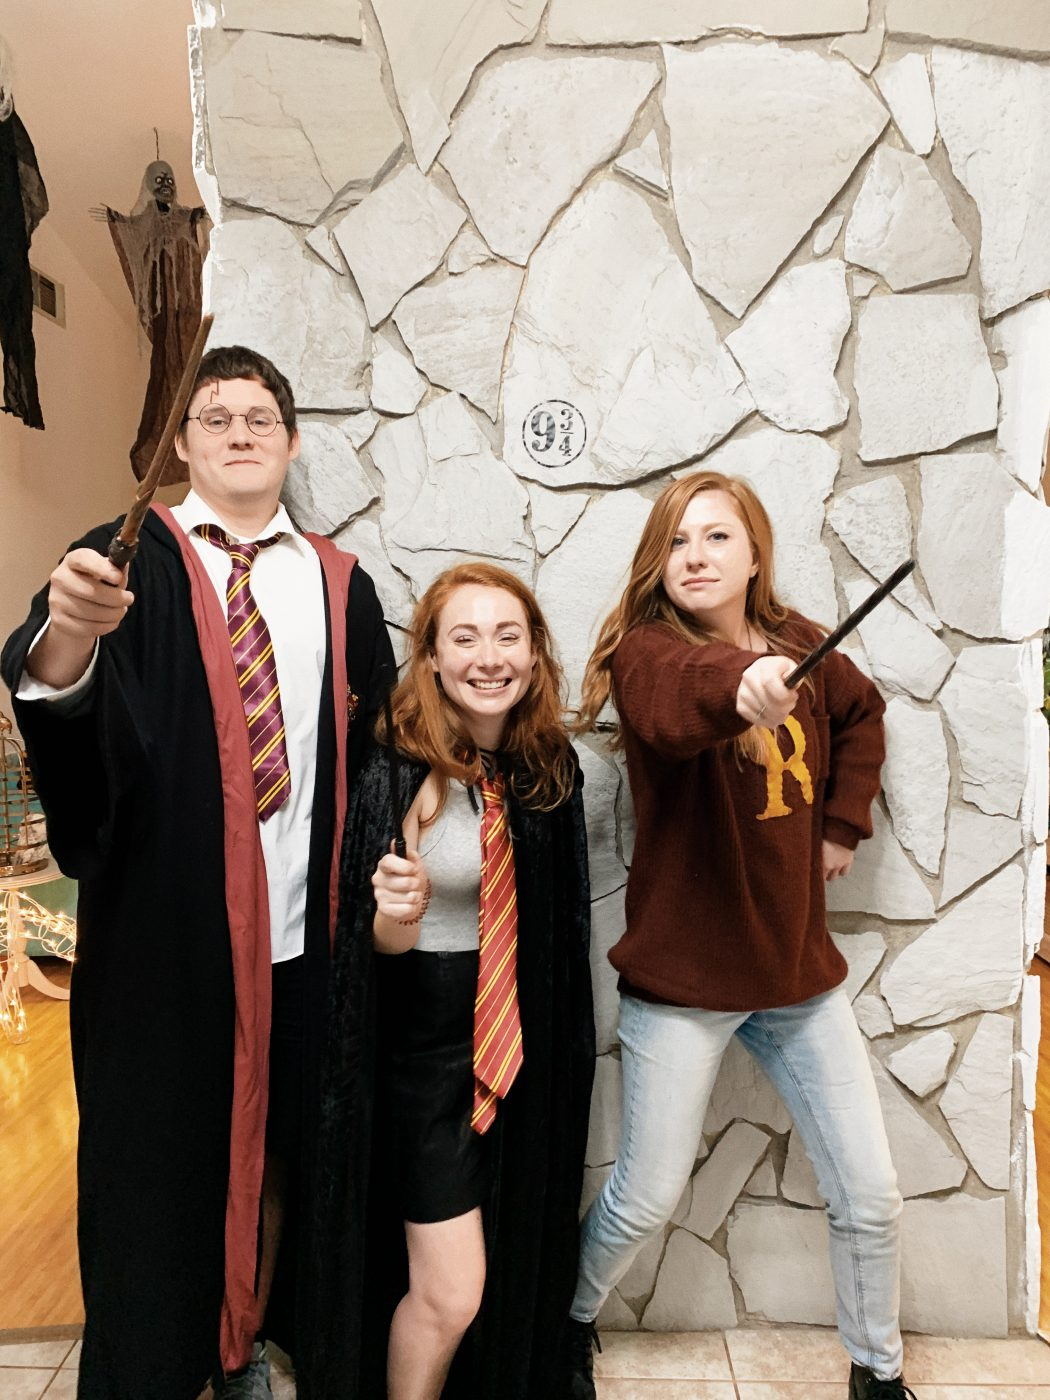 Harry Potter, Hermione, and Ron costumes